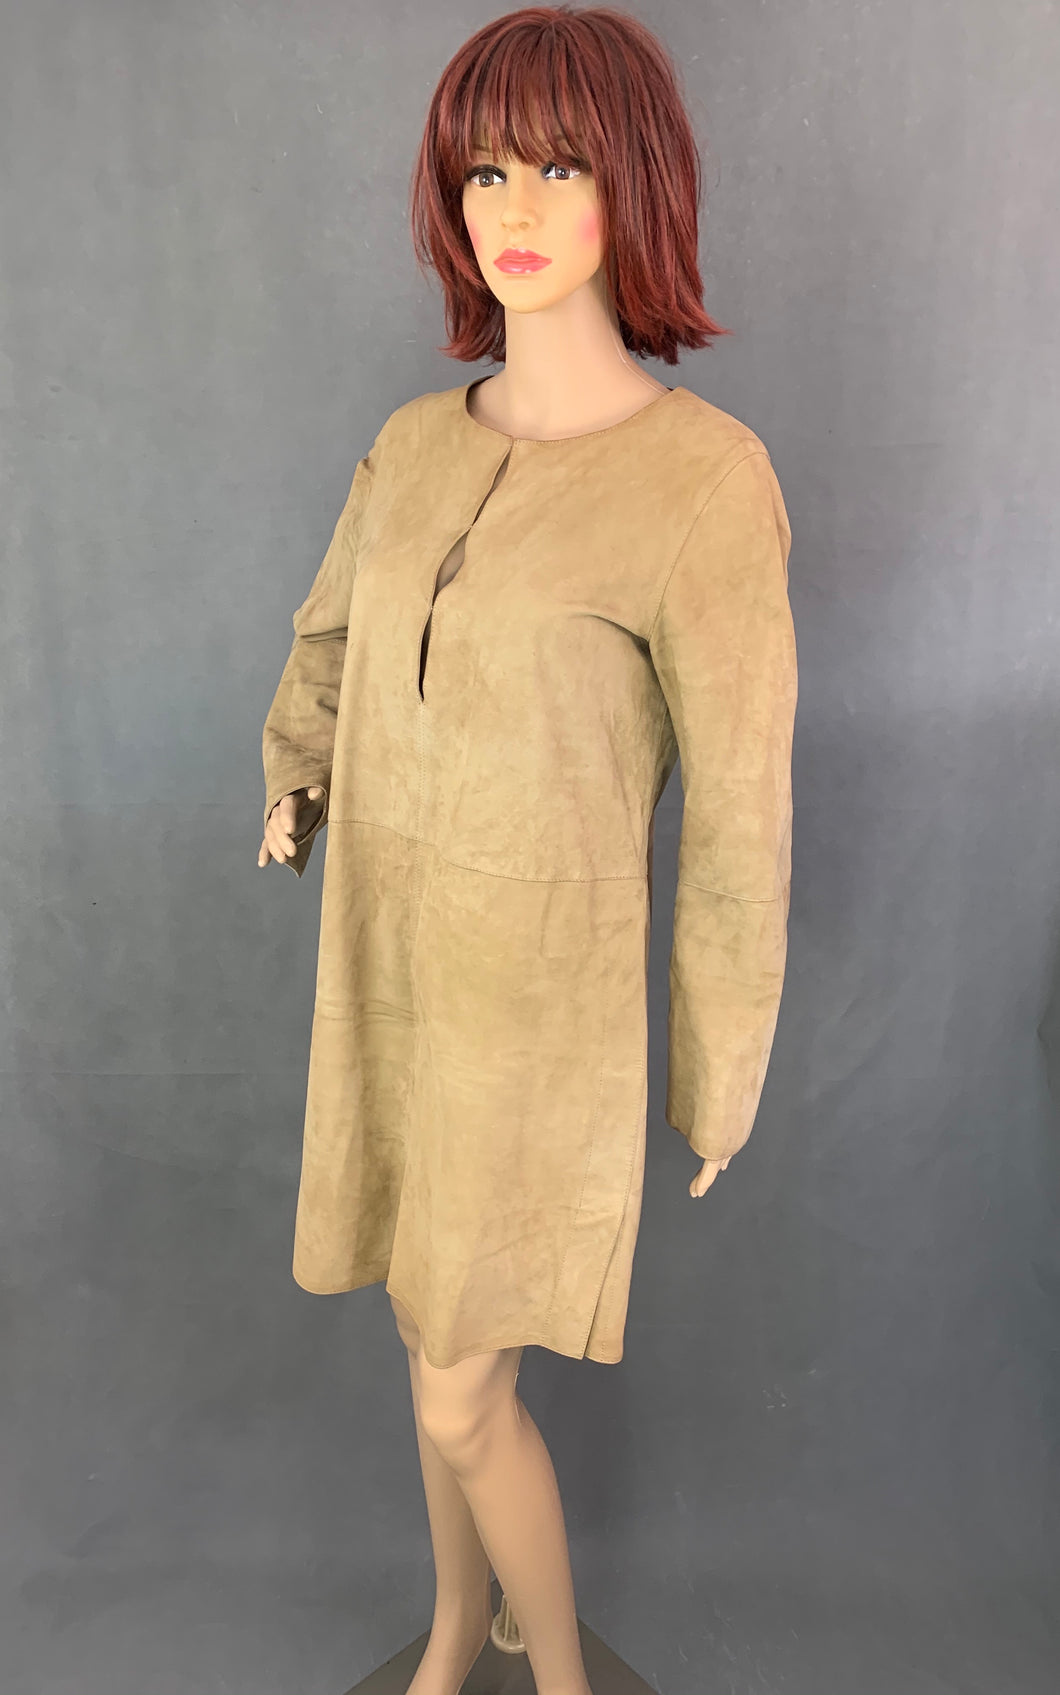 NICOLE FARHI Ladies Brown Suede Leather DRESS - Size Small - S